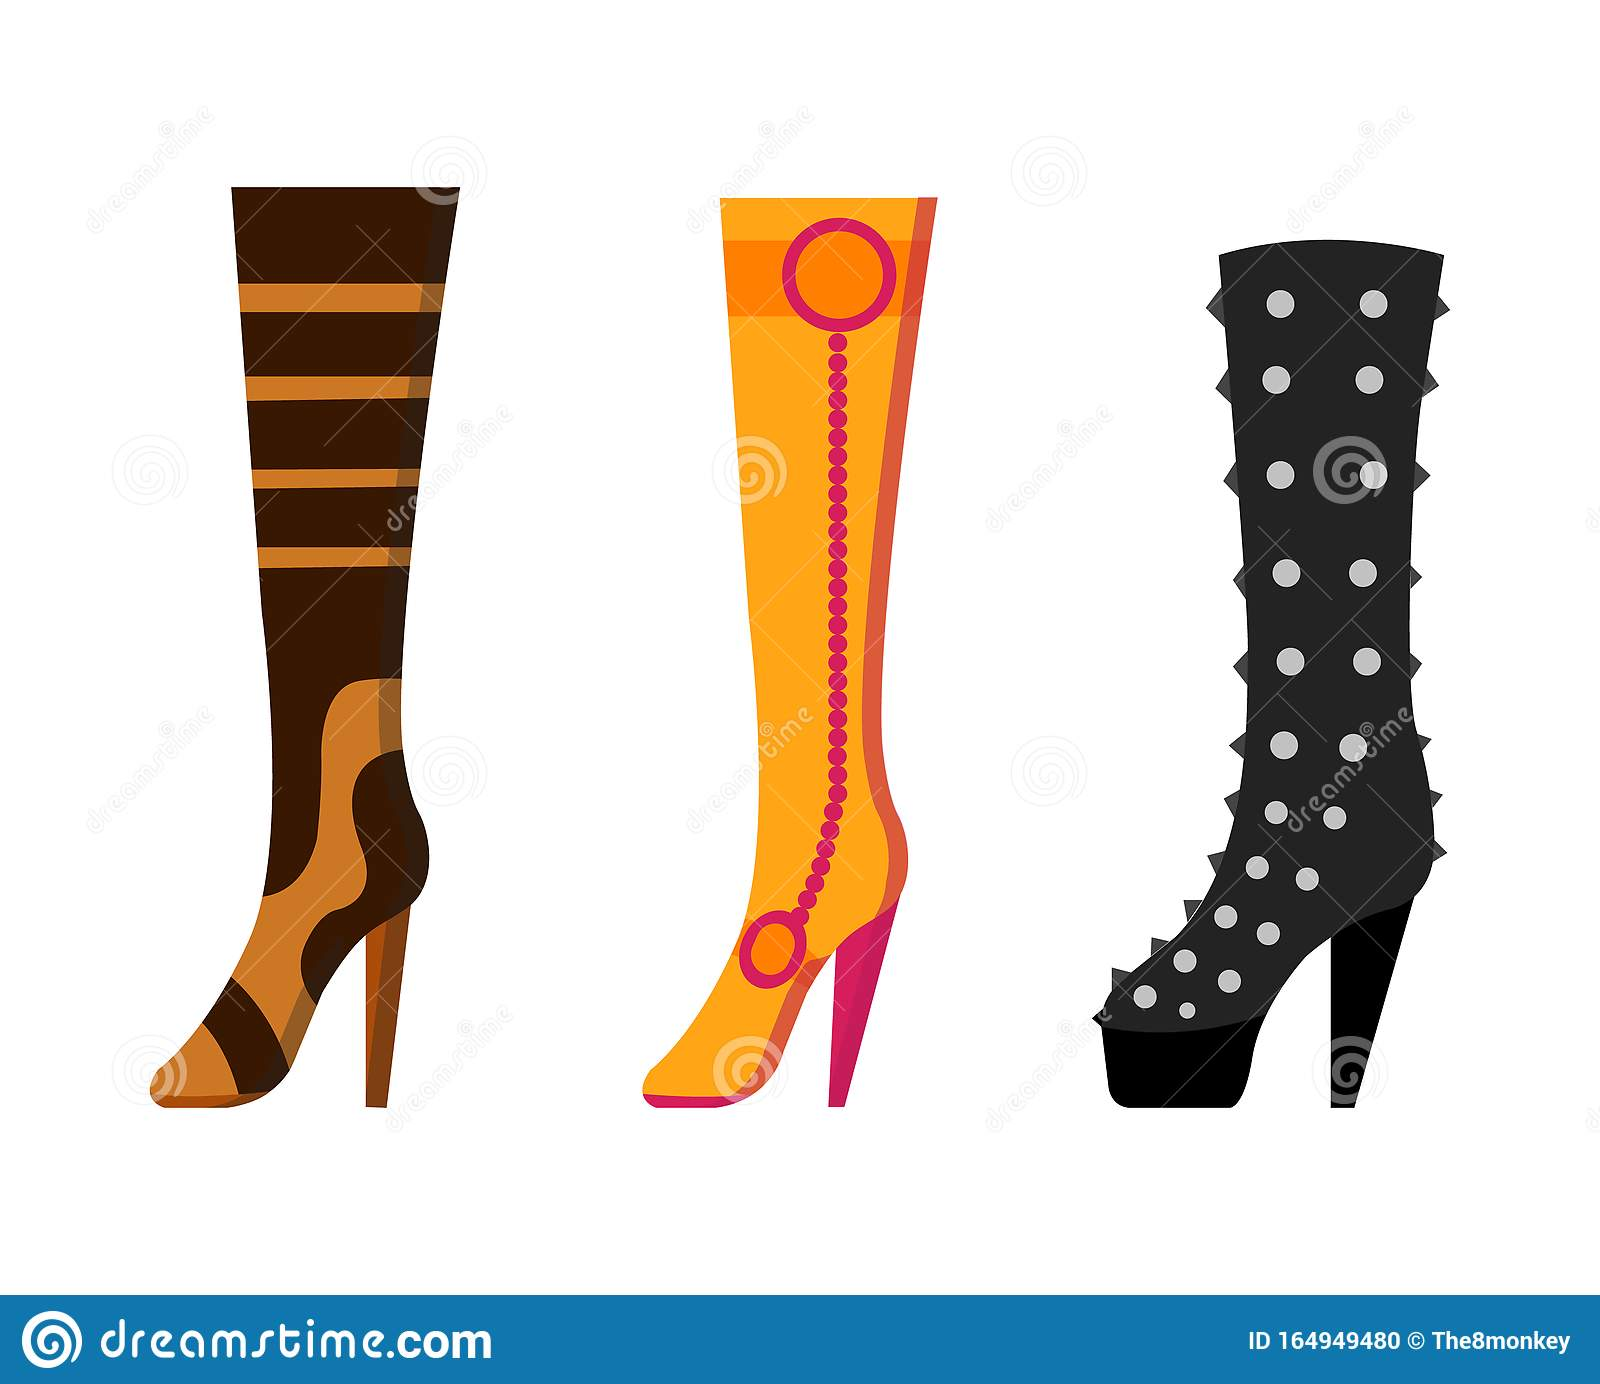 Set With Different Types Of Trend Womens Shoes Color Decorative Design Use For Advertising Shoe Store Or Website Flat Stock Vector Illustration Of Female Sandals 164949480